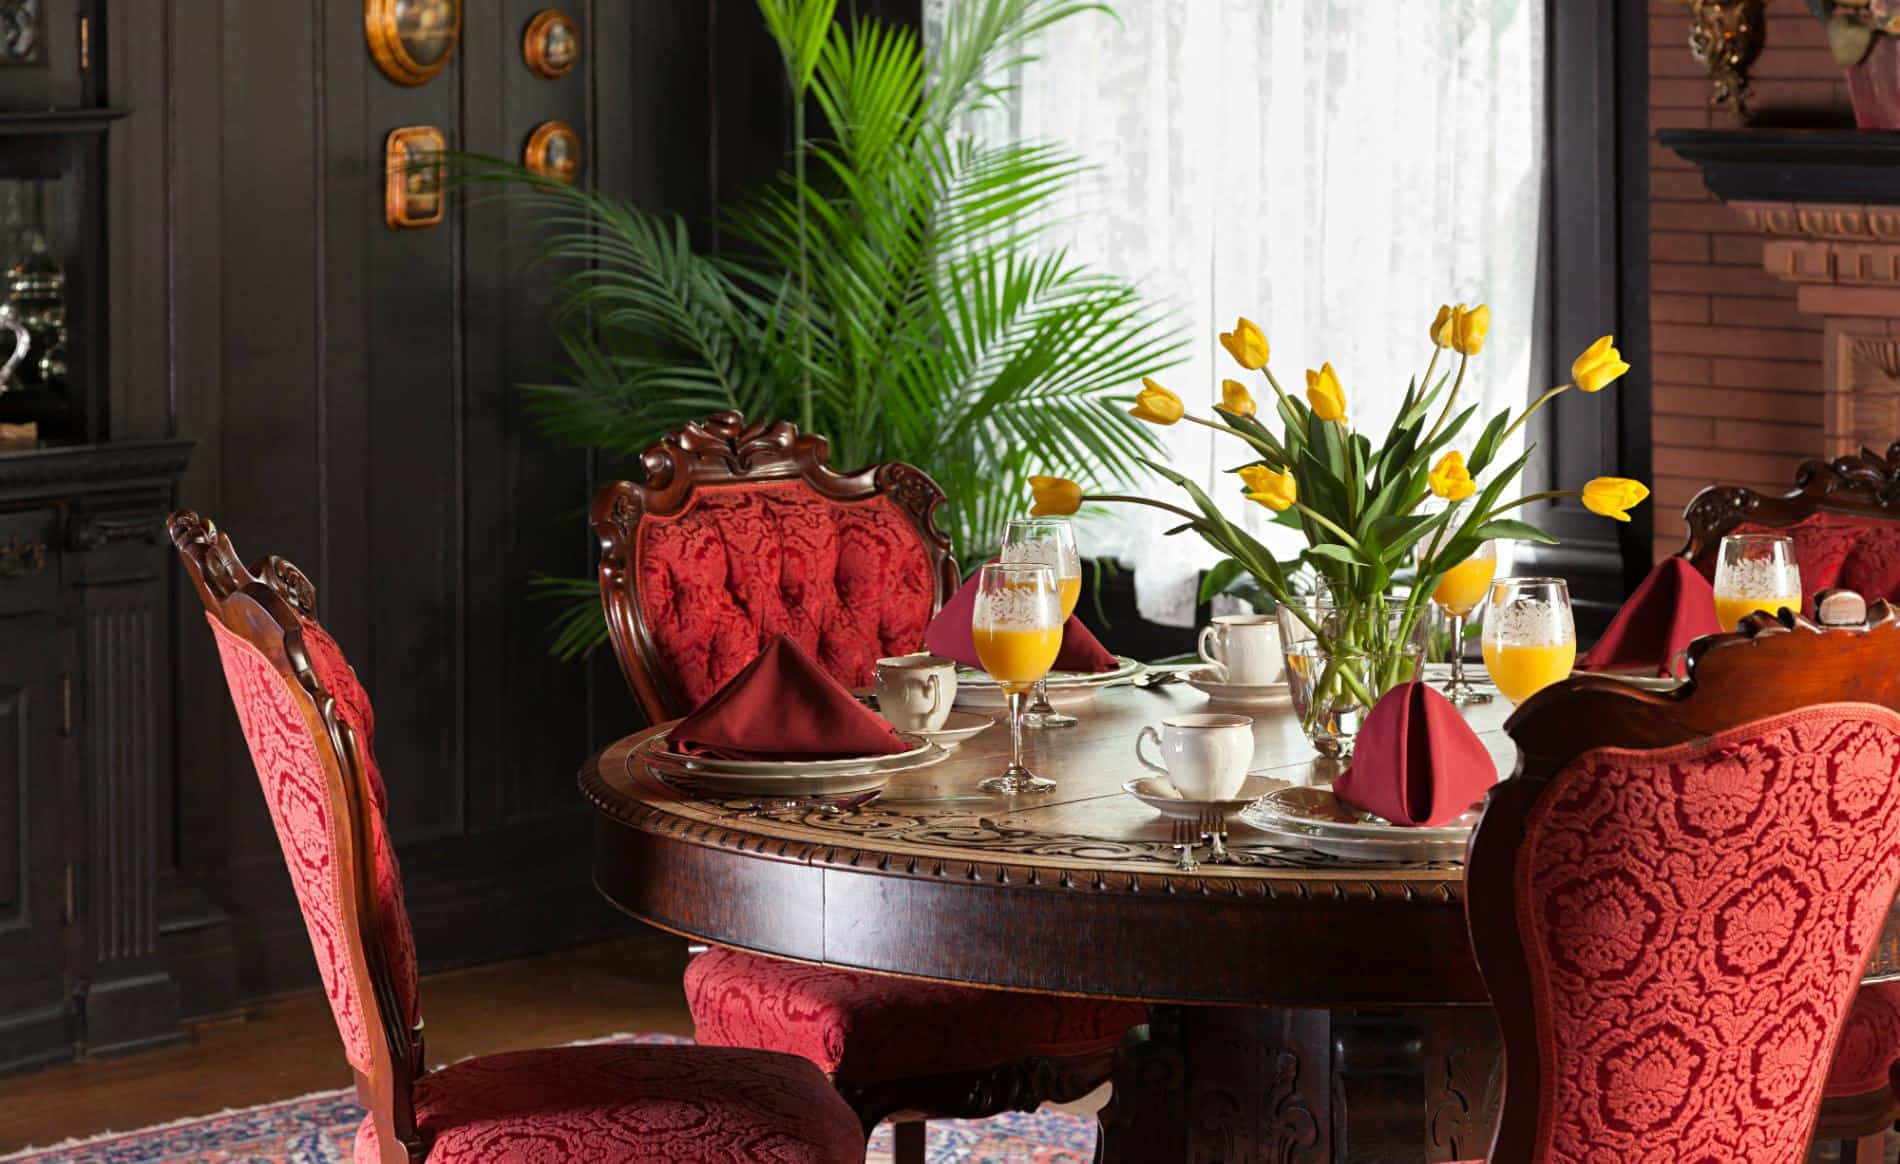 Red velvet chairs around carved wood table with white china, red napkins, orange juice in wine glasses and yellow tulips